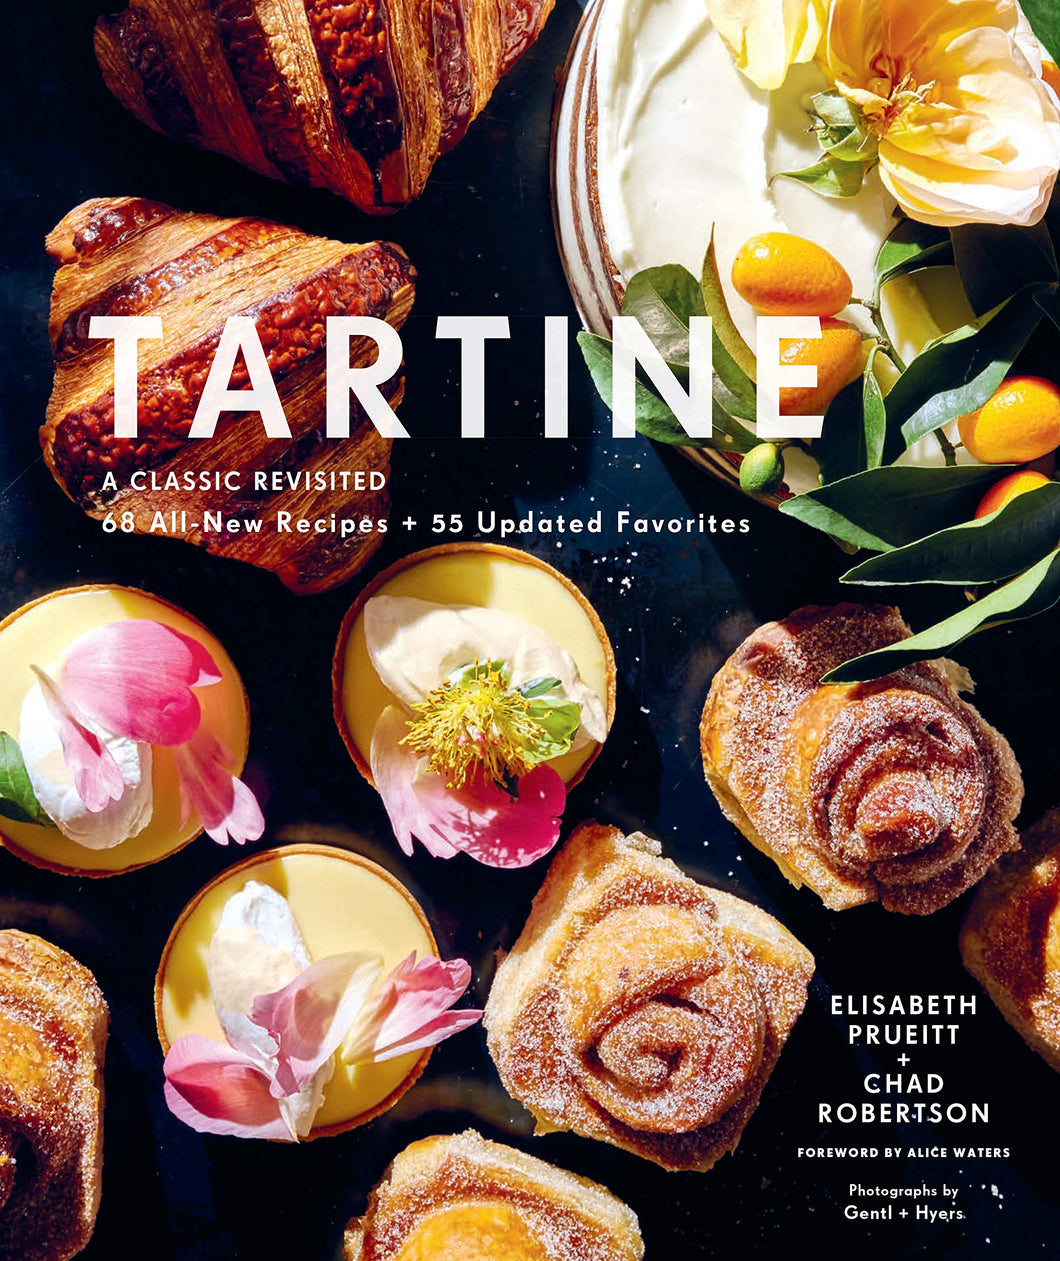 Tartine: A Classic Revisited: 68 All-New Recipes + 55 Updated Favorites (Baking Cookbooks, Pastry Books, Dessert Cookbooks, Gifts for Pastry Chefs) - Tolerant Planet